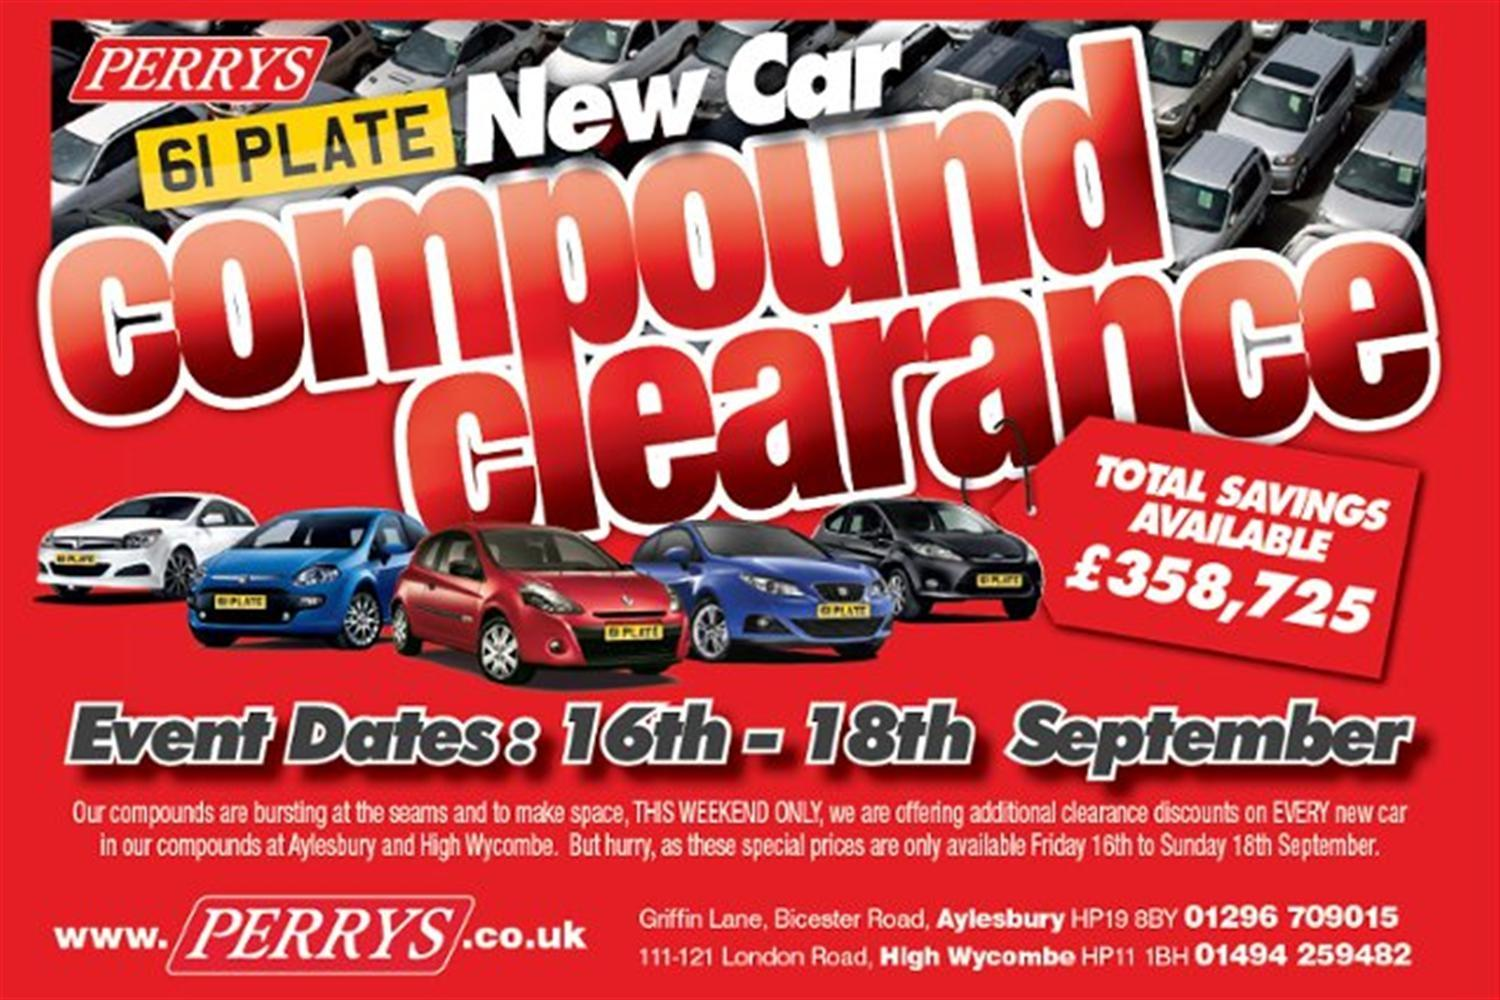 'Compound clearance' discount weekend at Perrys